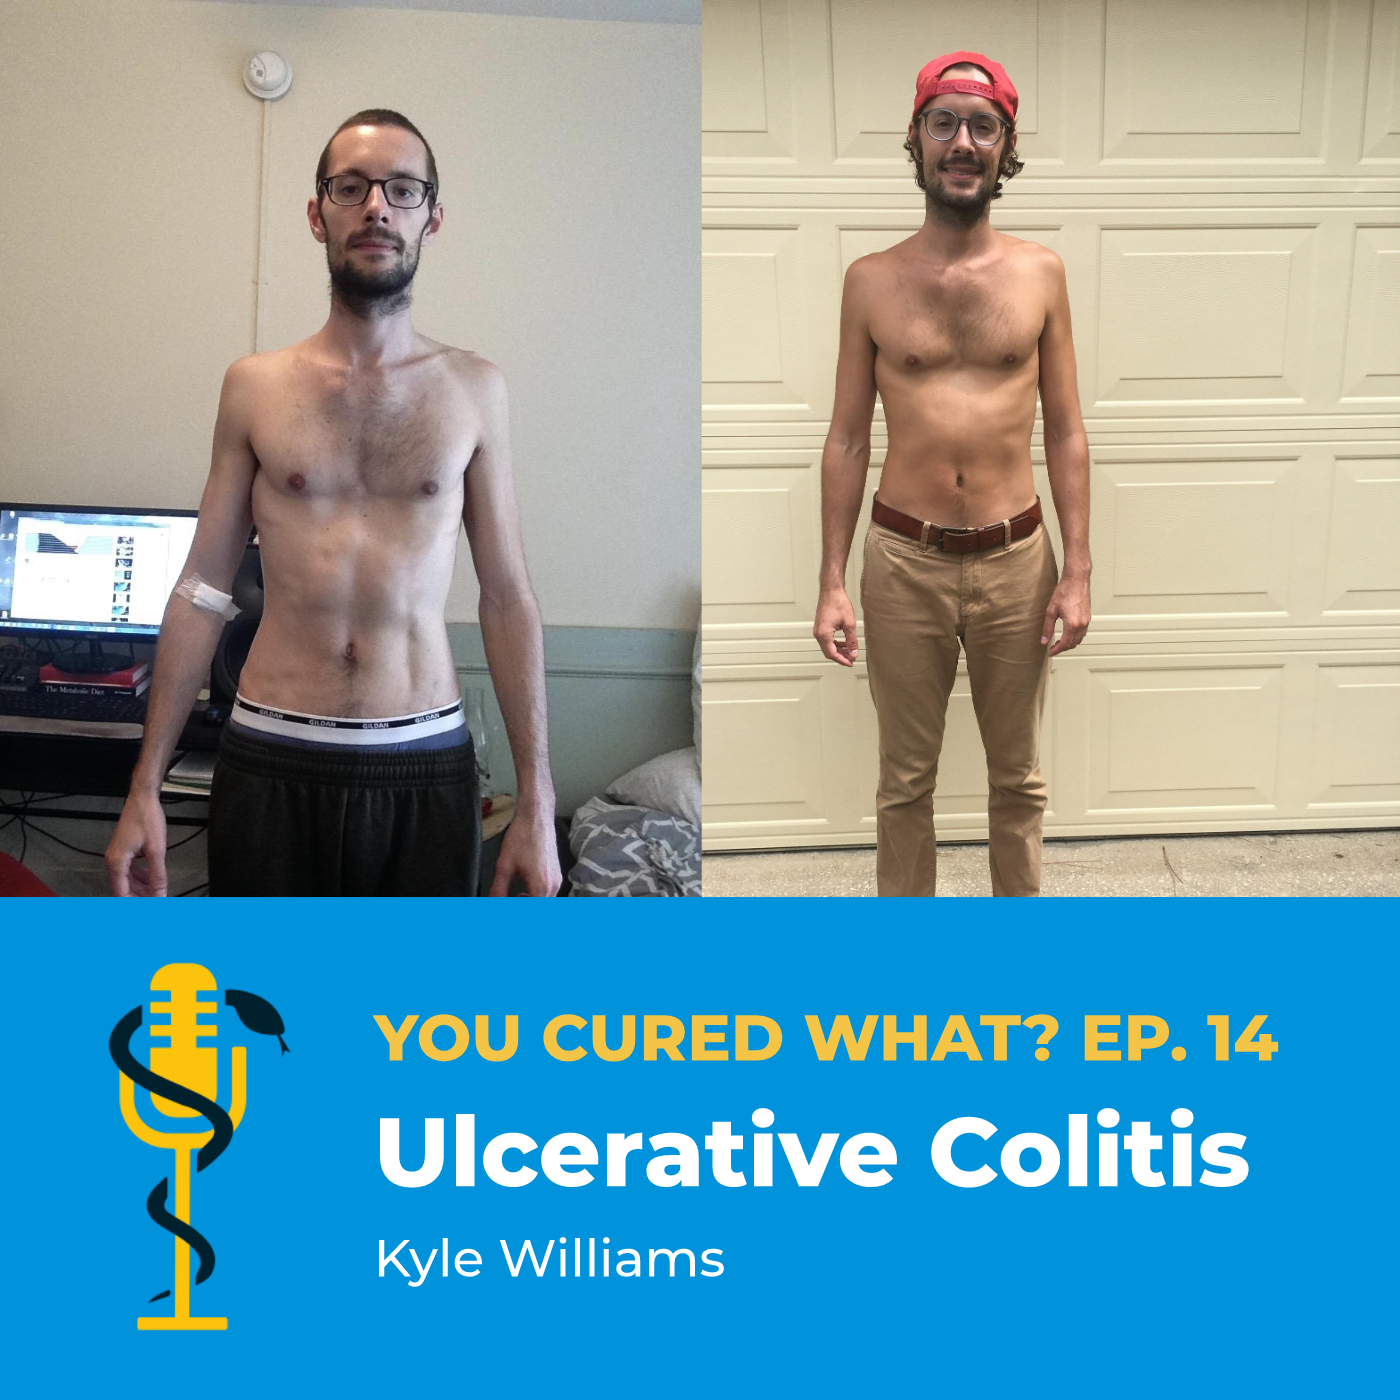 Ep.14: Ulcerative Colitis with Kyle Williams